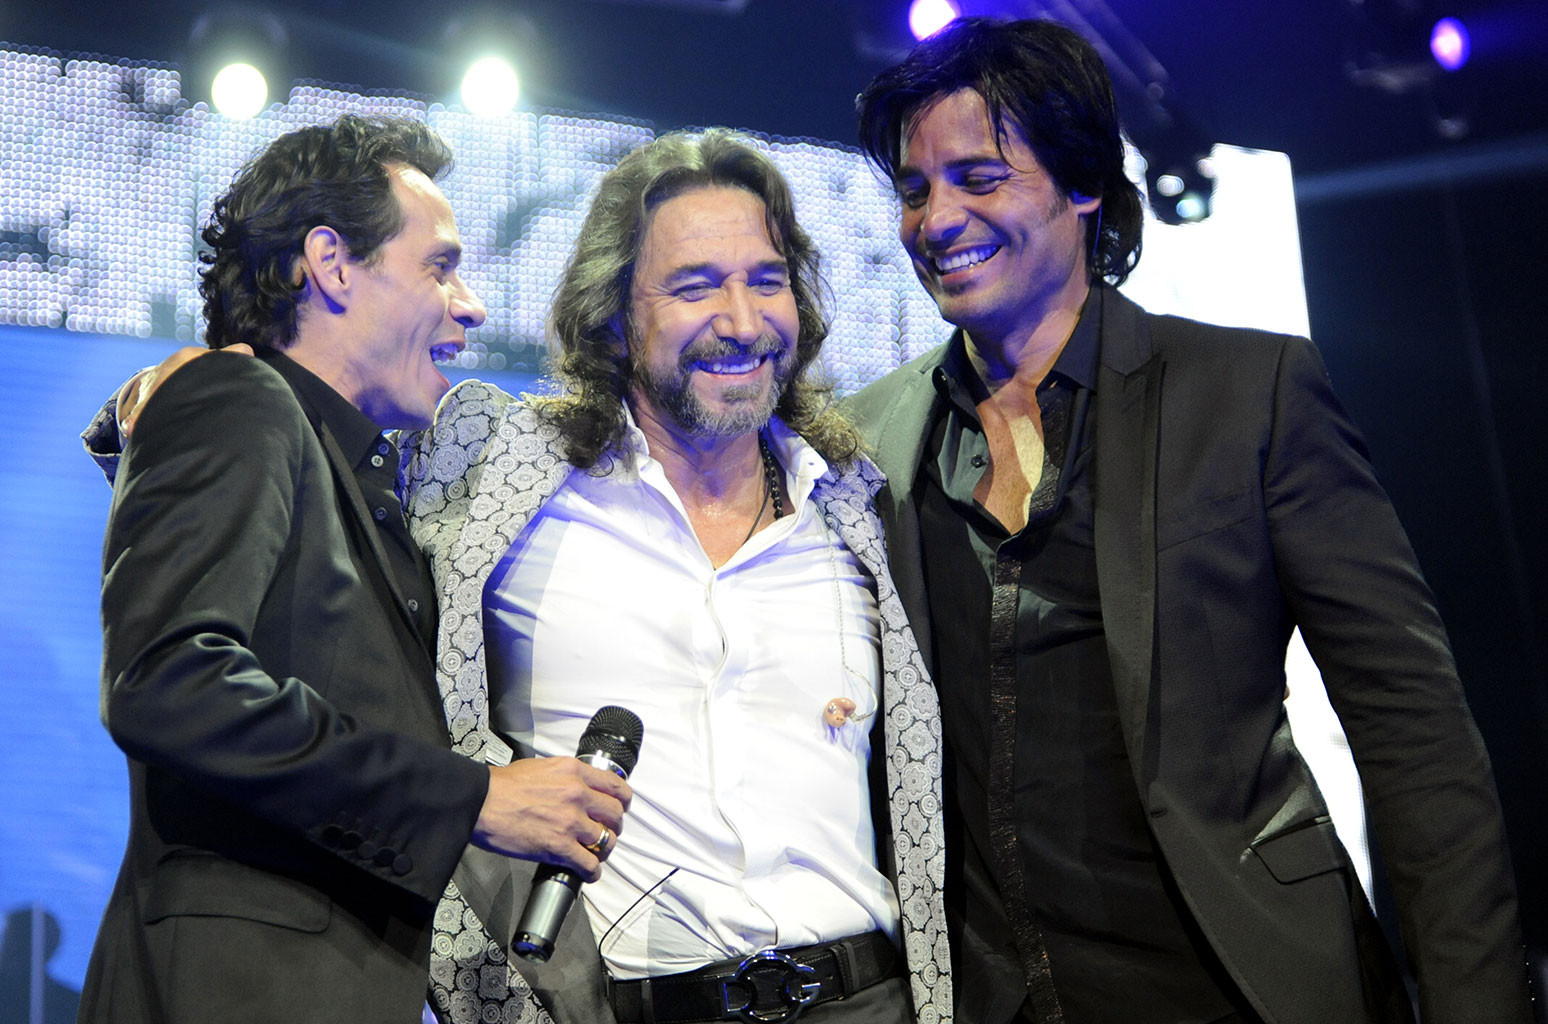 Marc Anthony, Marco Antonio Solis, and Chayanne